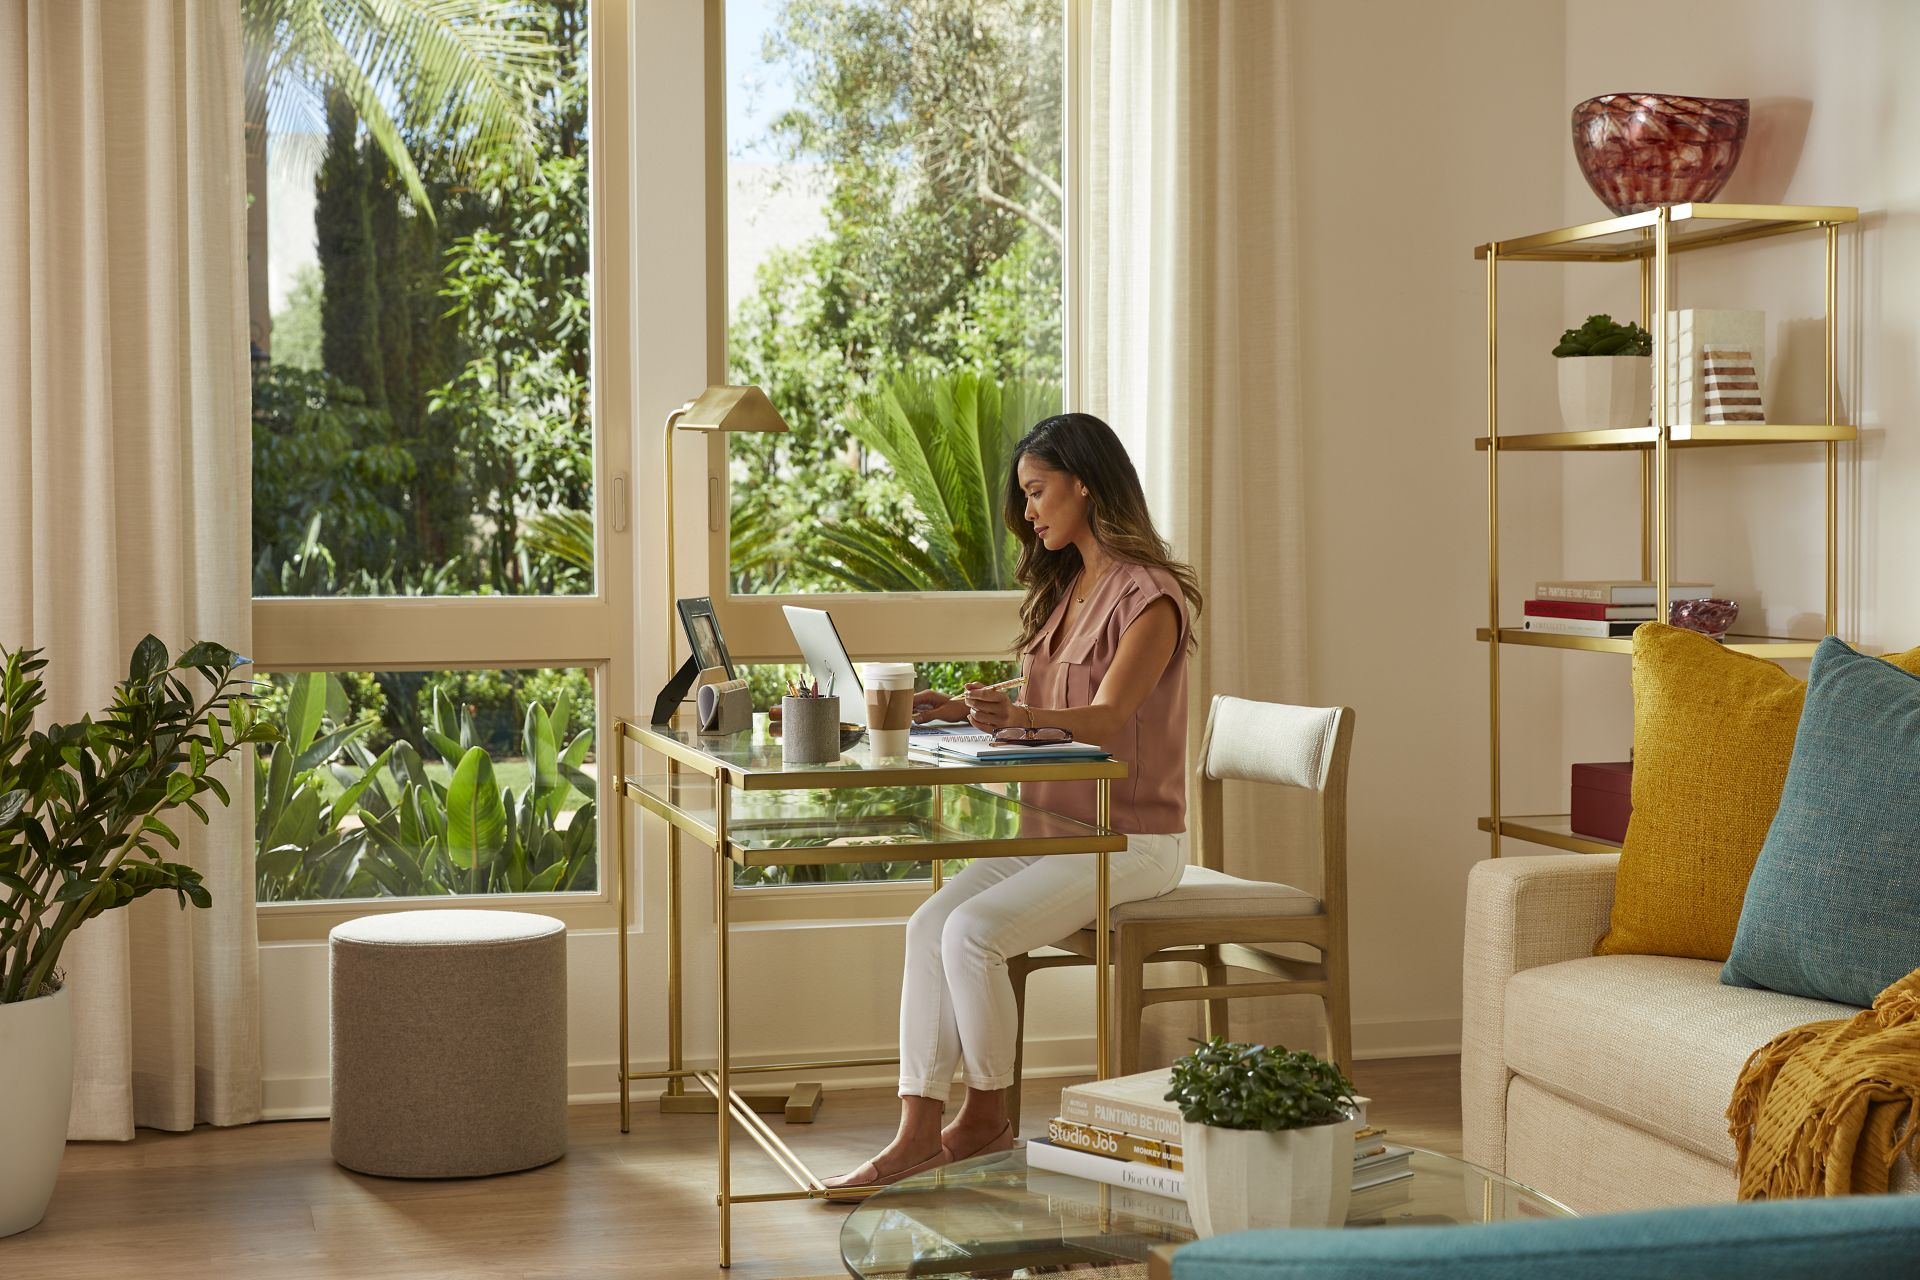 Interior view of woman working from home at Promenade Apartment Homes in Irvine, CA.